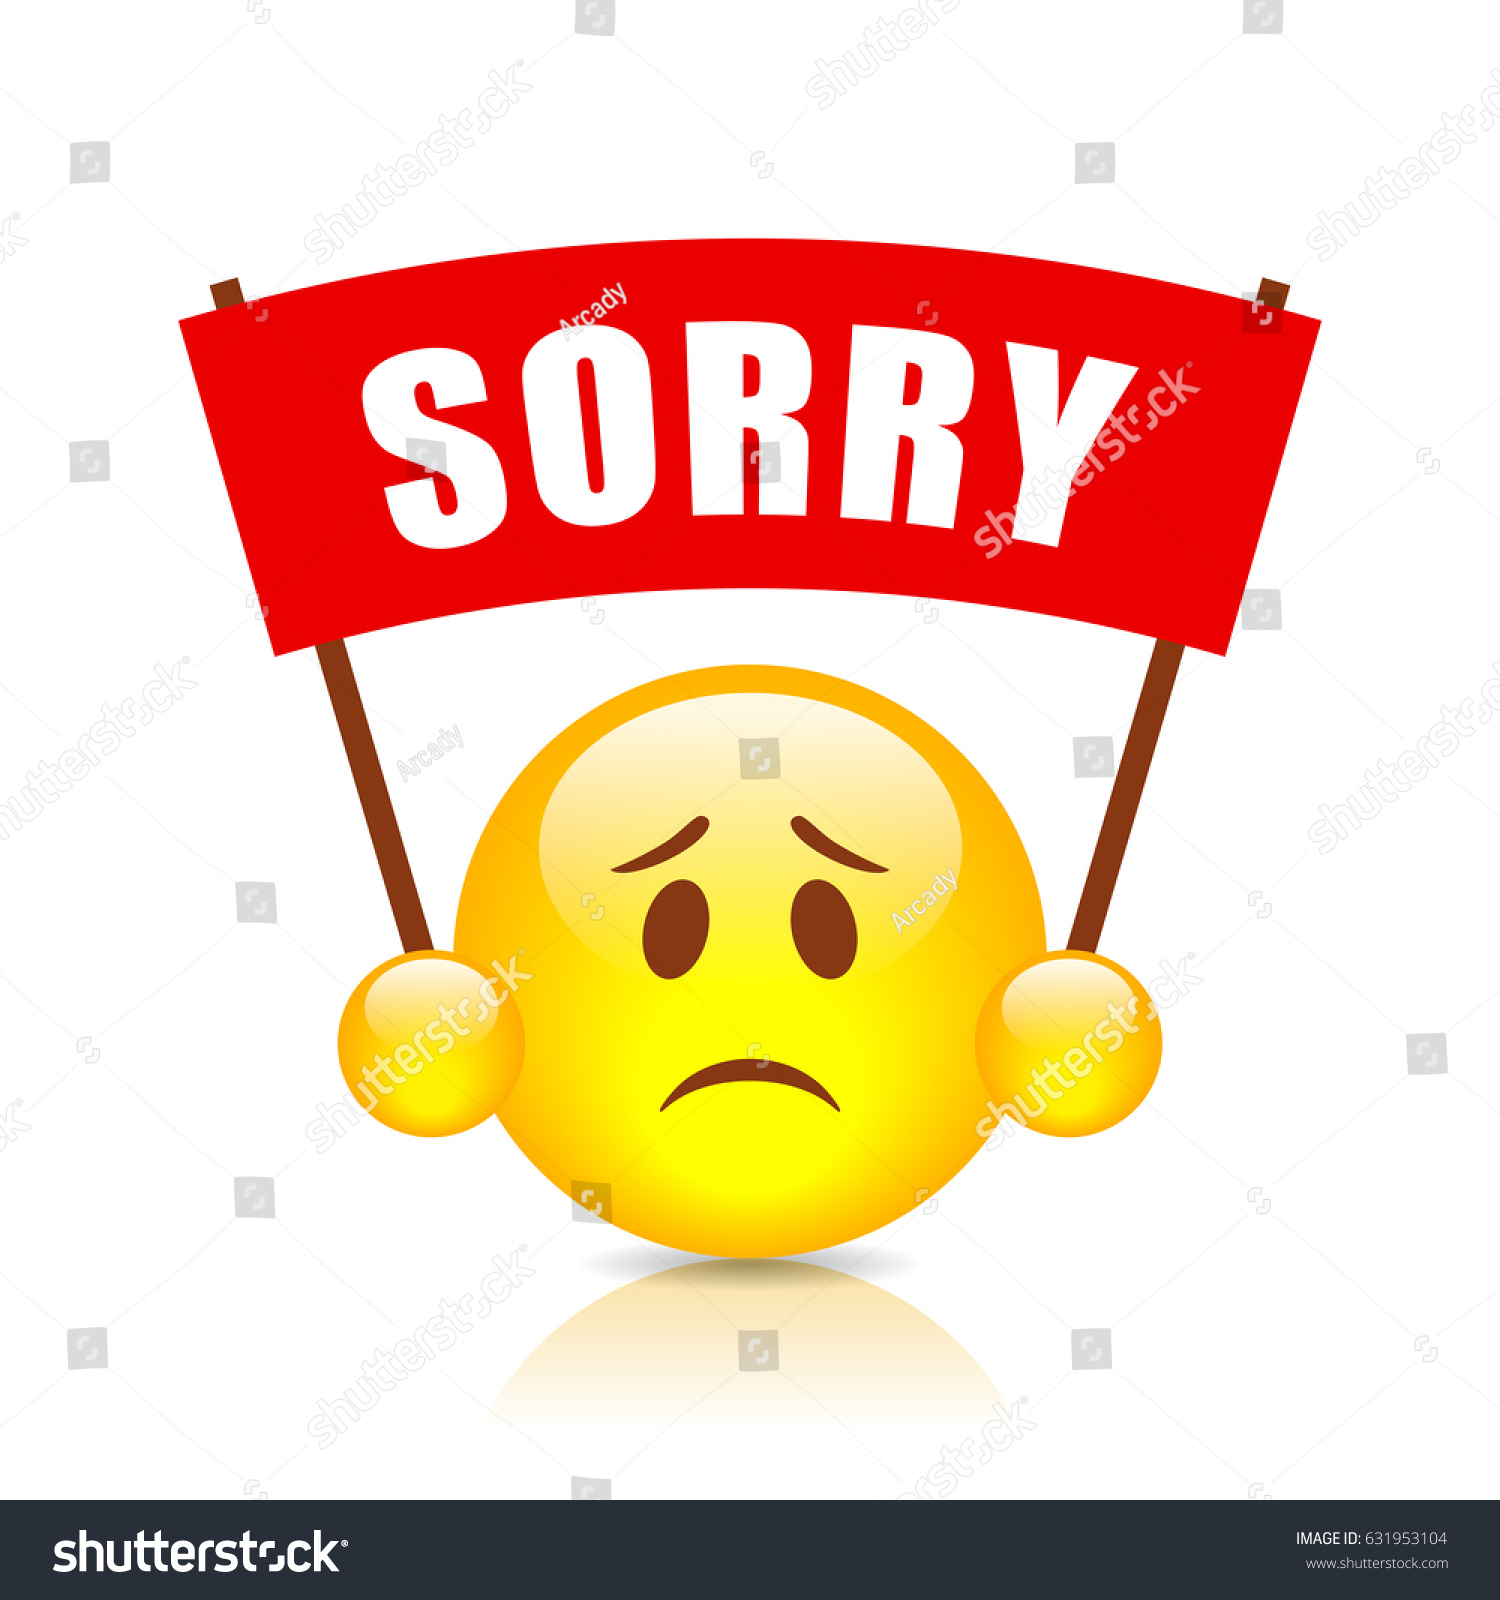 Sorry: Sorry Vector Sign On White Background Stock Vector